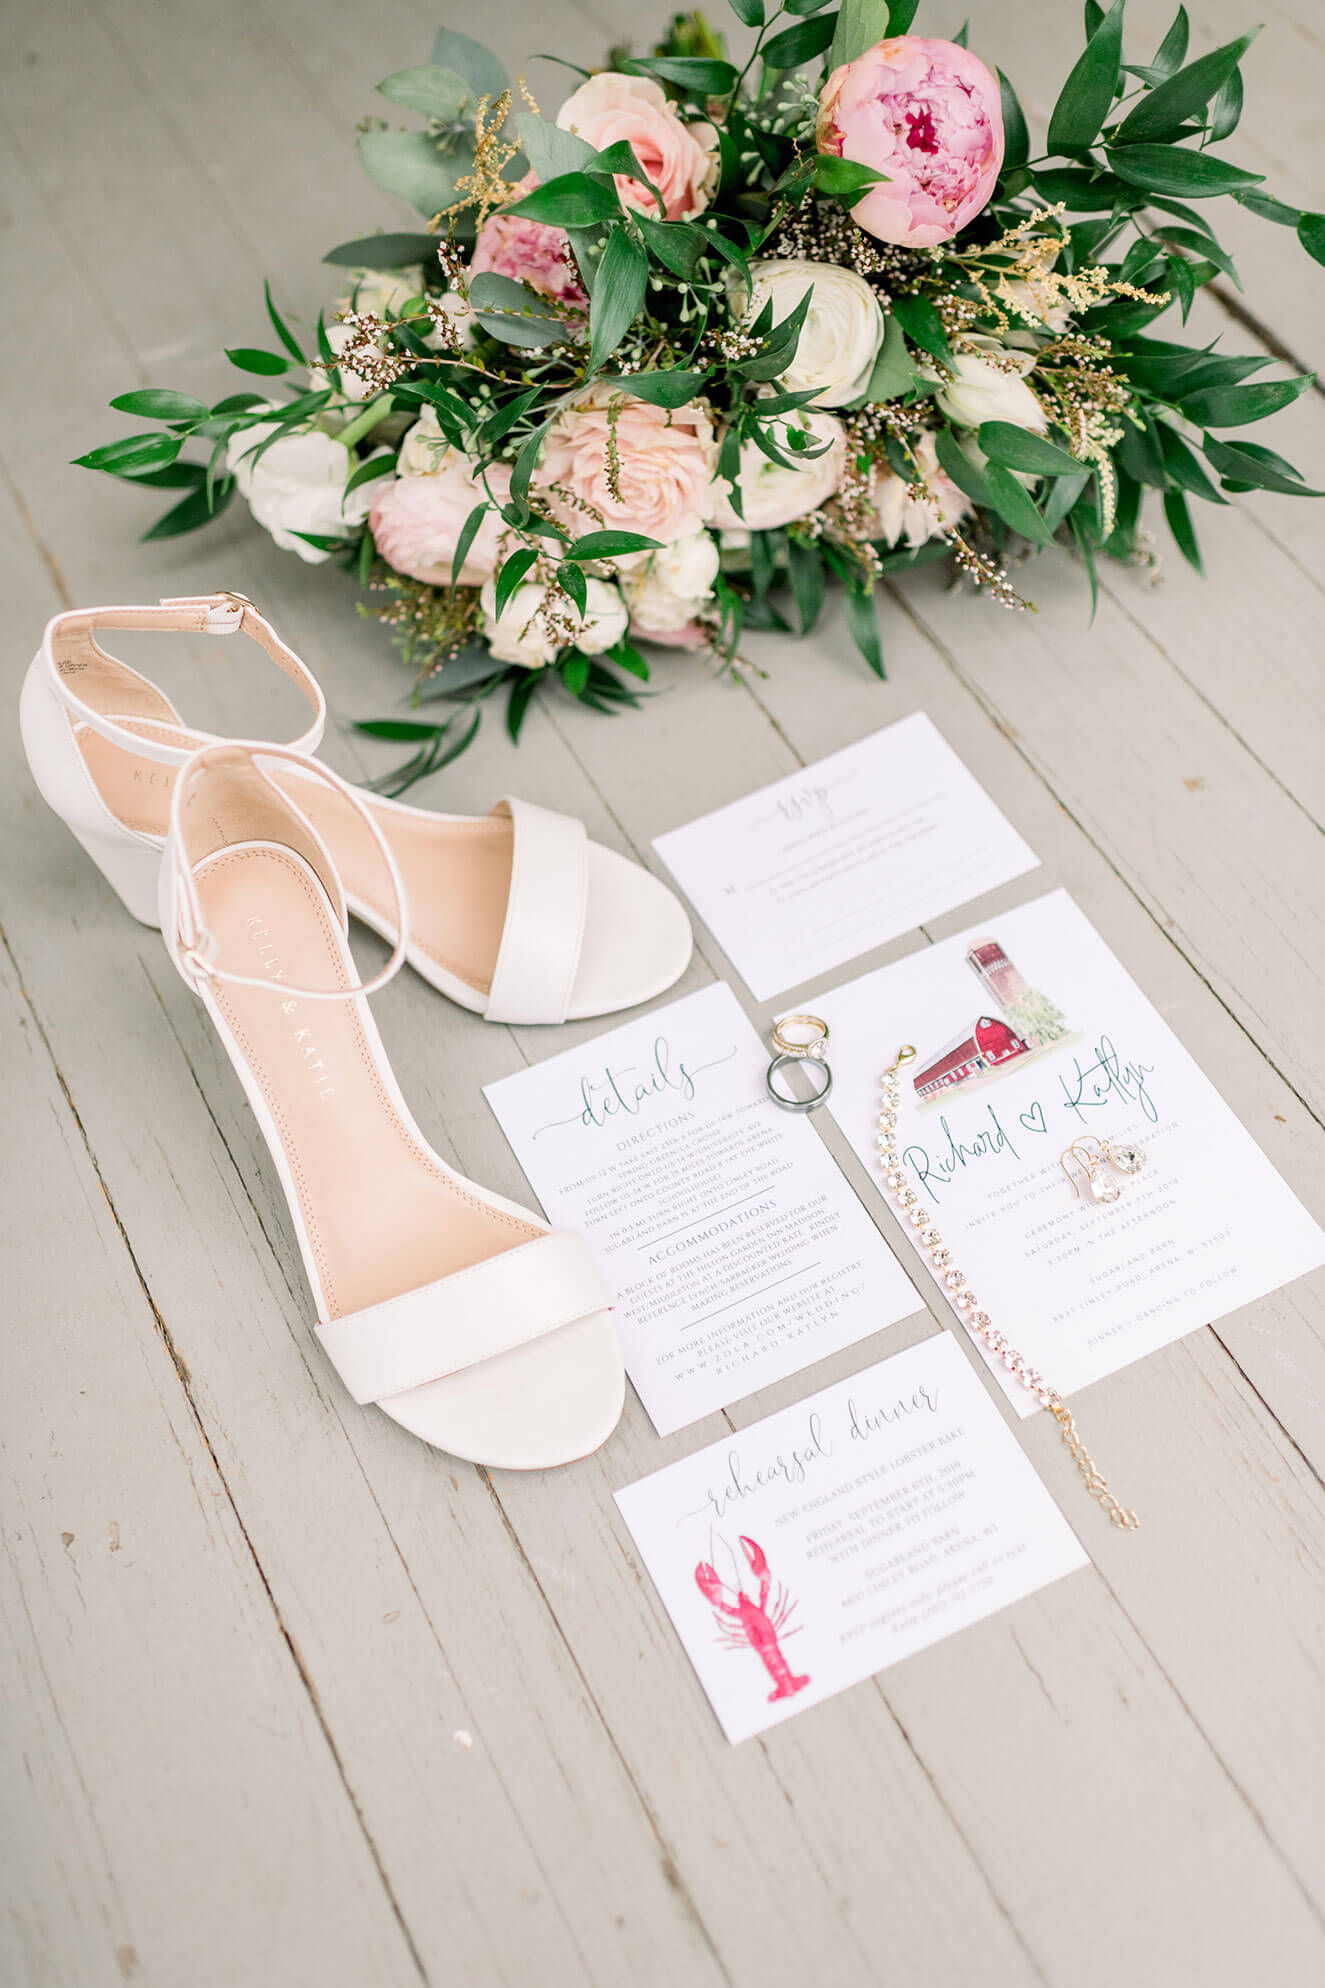 bright wedding details and invitations made by the bride